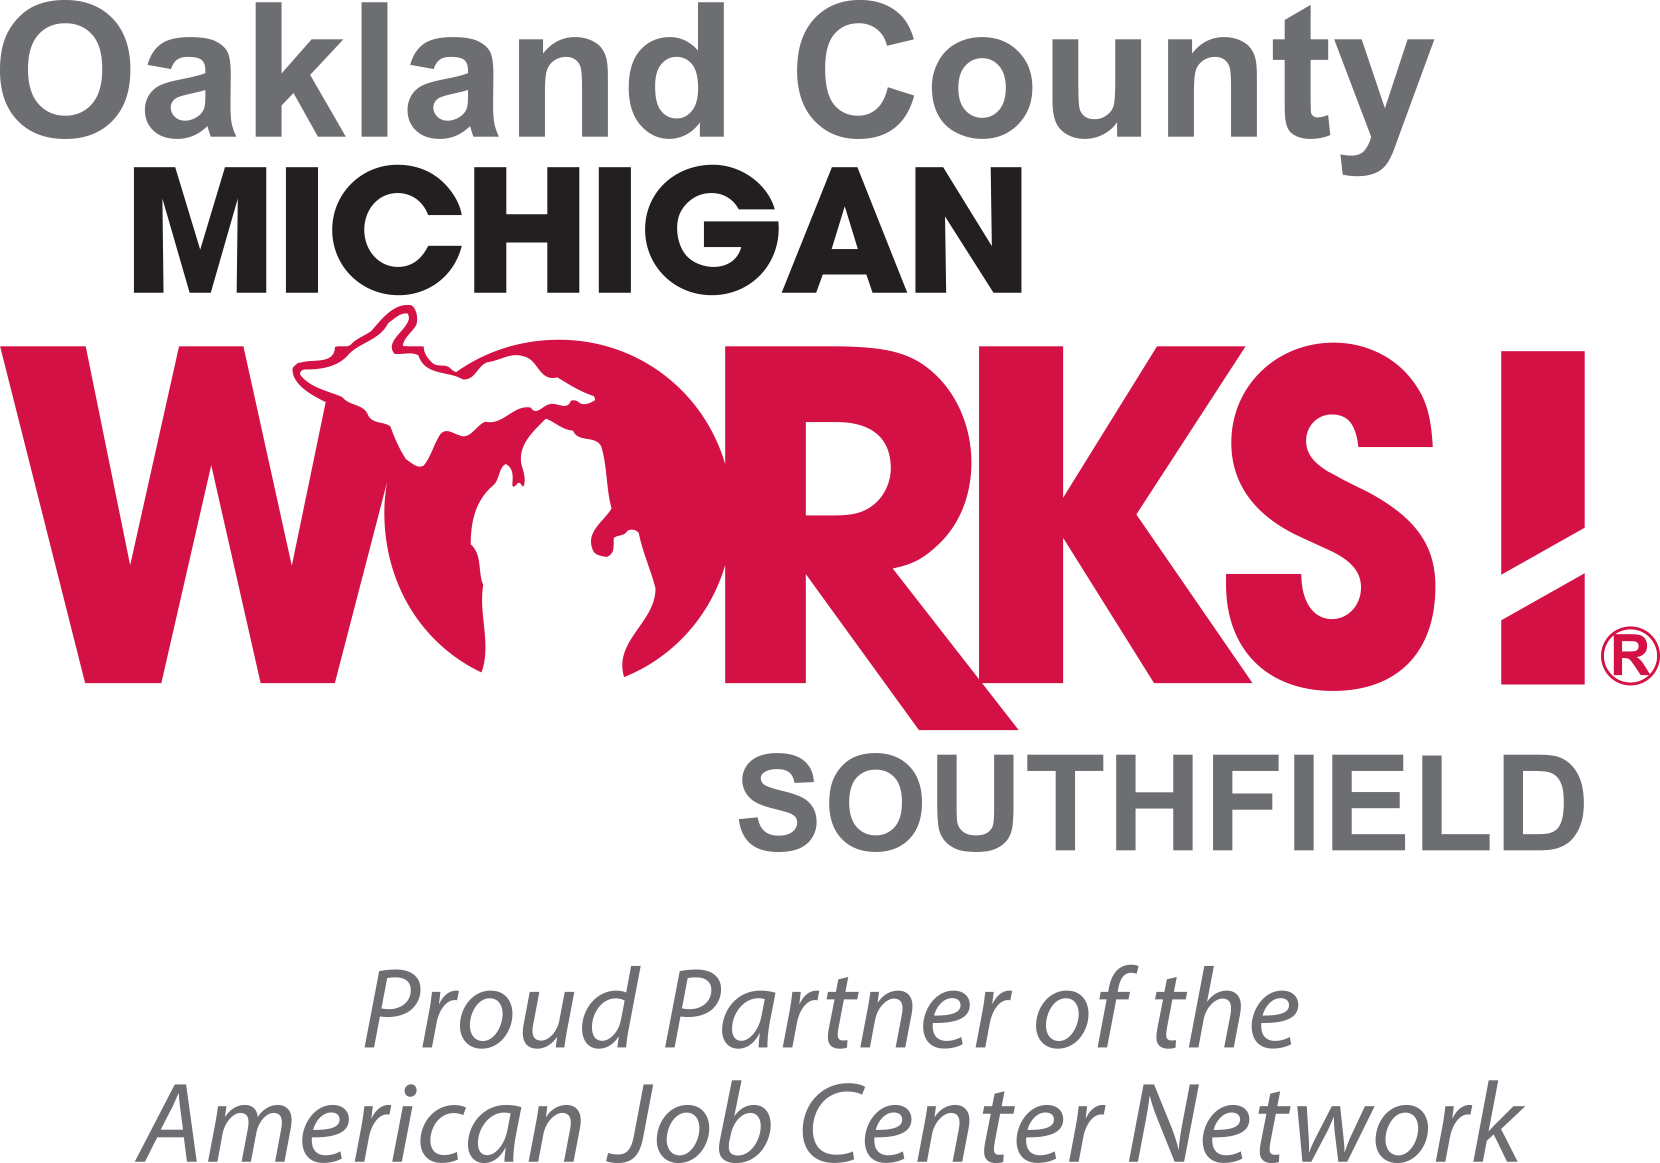 Oakland County Michigan Works Southfield Logo